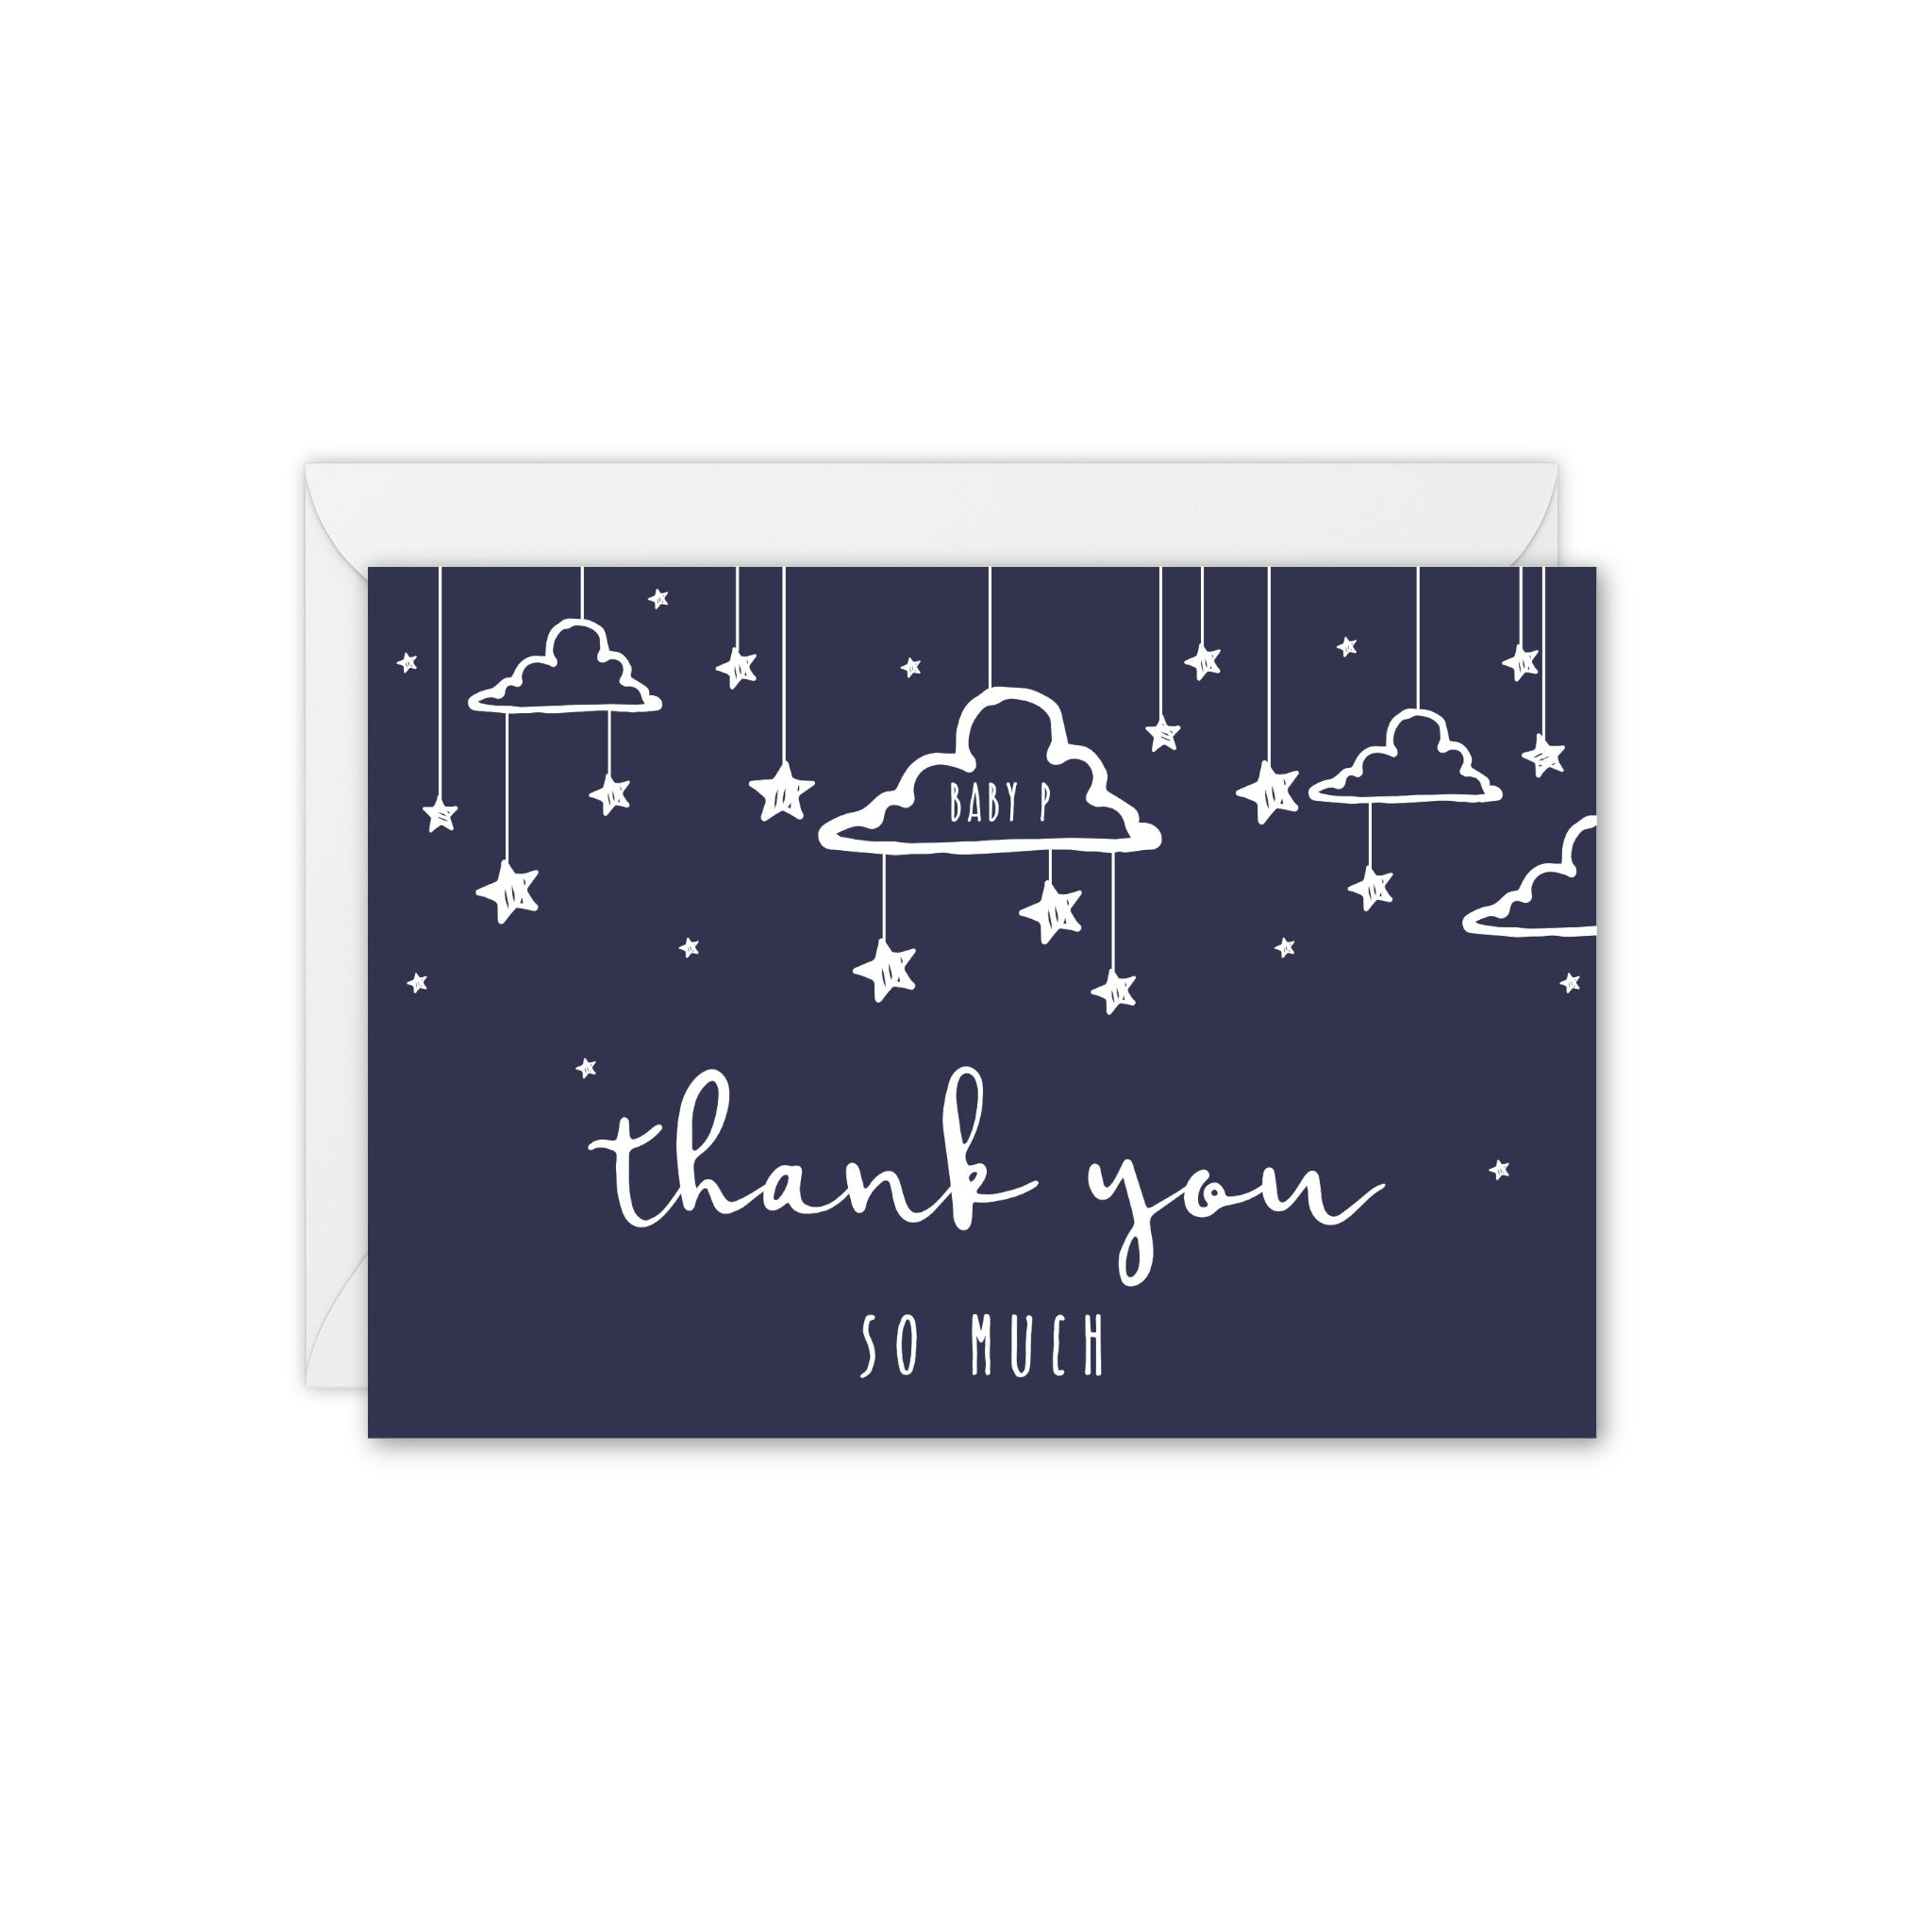 Little Dreamer Clouds and Stars Personalised Baby Thank You Card - Navy